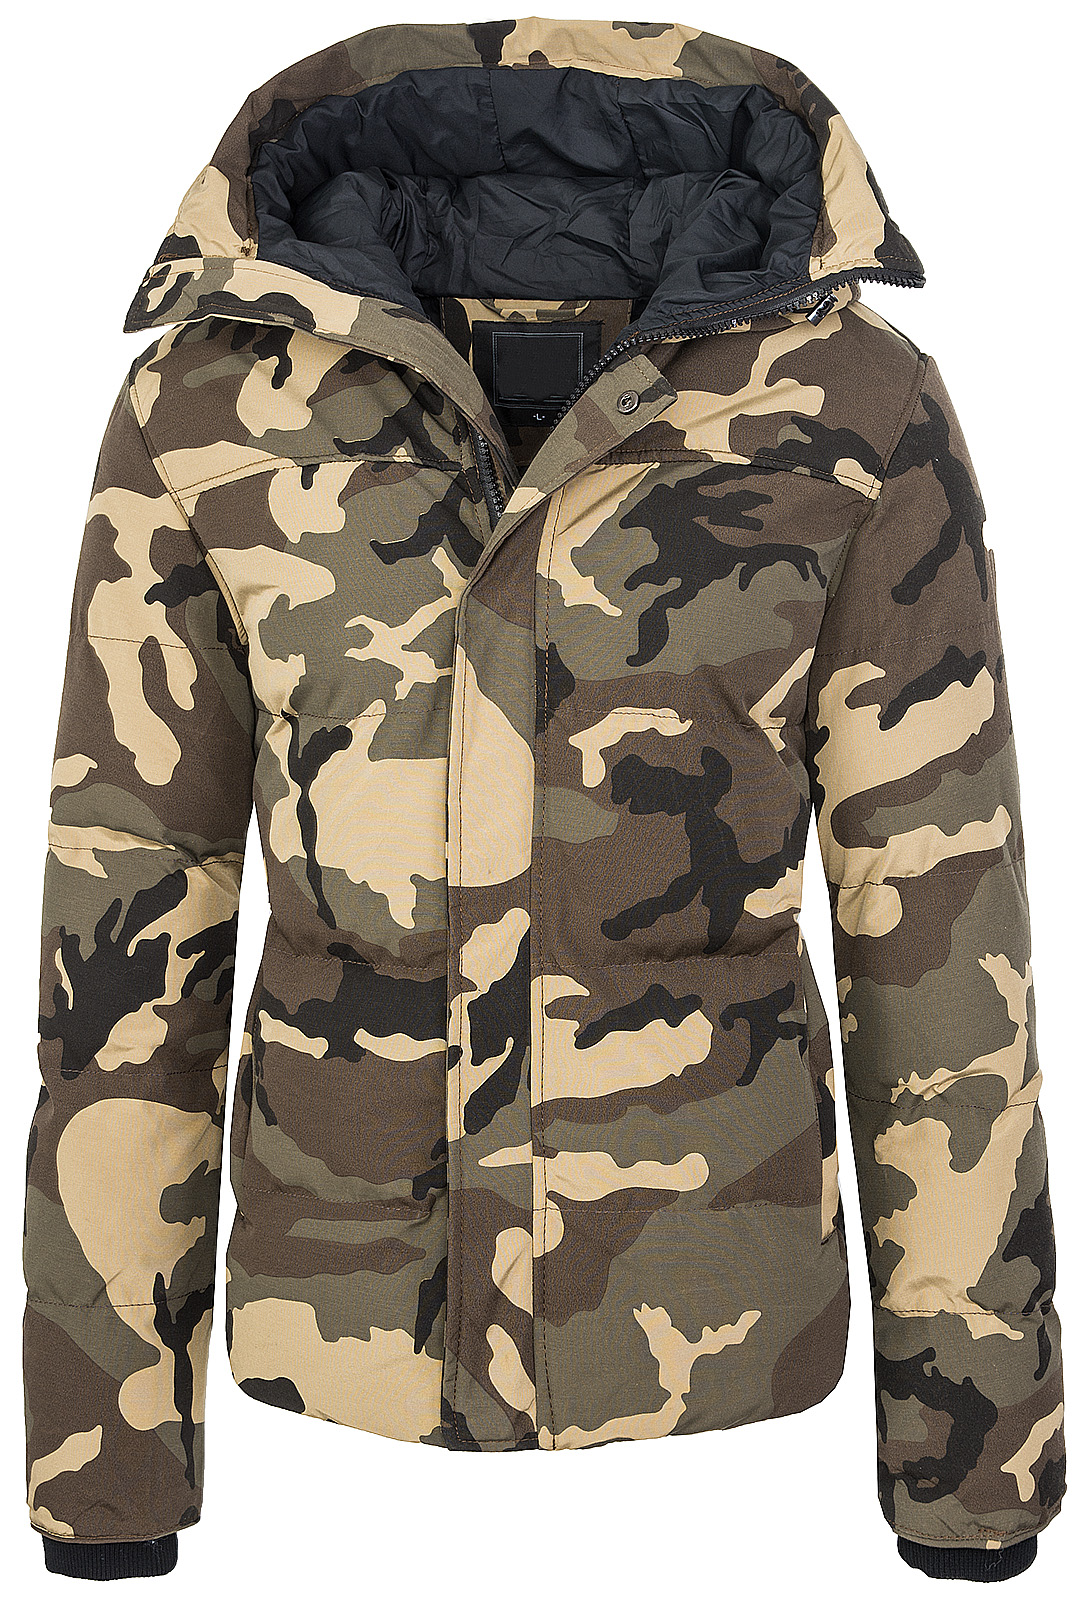 herren outdoor winterjacke camouflage jacke jagdjacke kapuze warm s xxl h 128 ebay. Black Bedroom Furniture Sets. Home Design Ideas